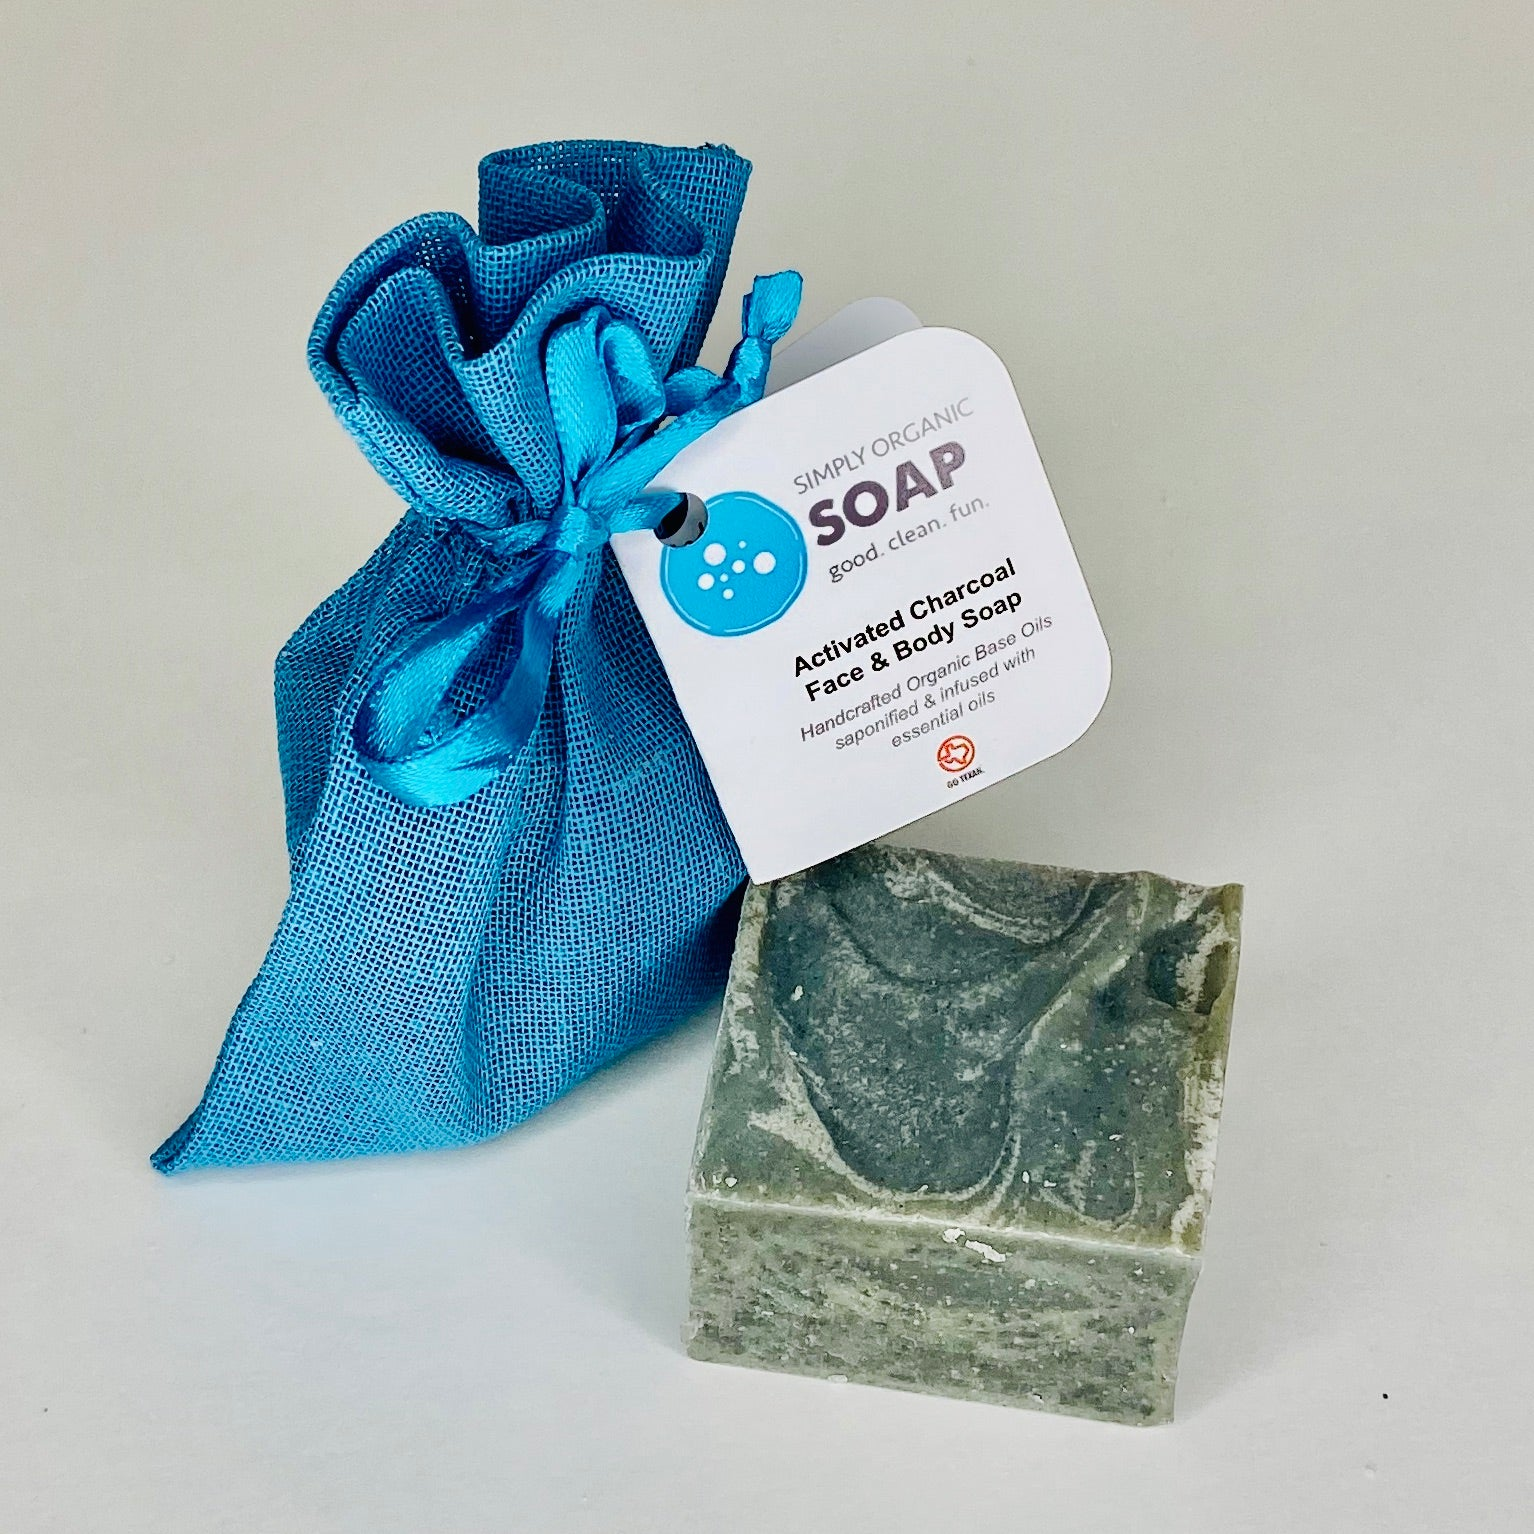 Skin-balancing Charcoal Guest Soap with activated Charcoal